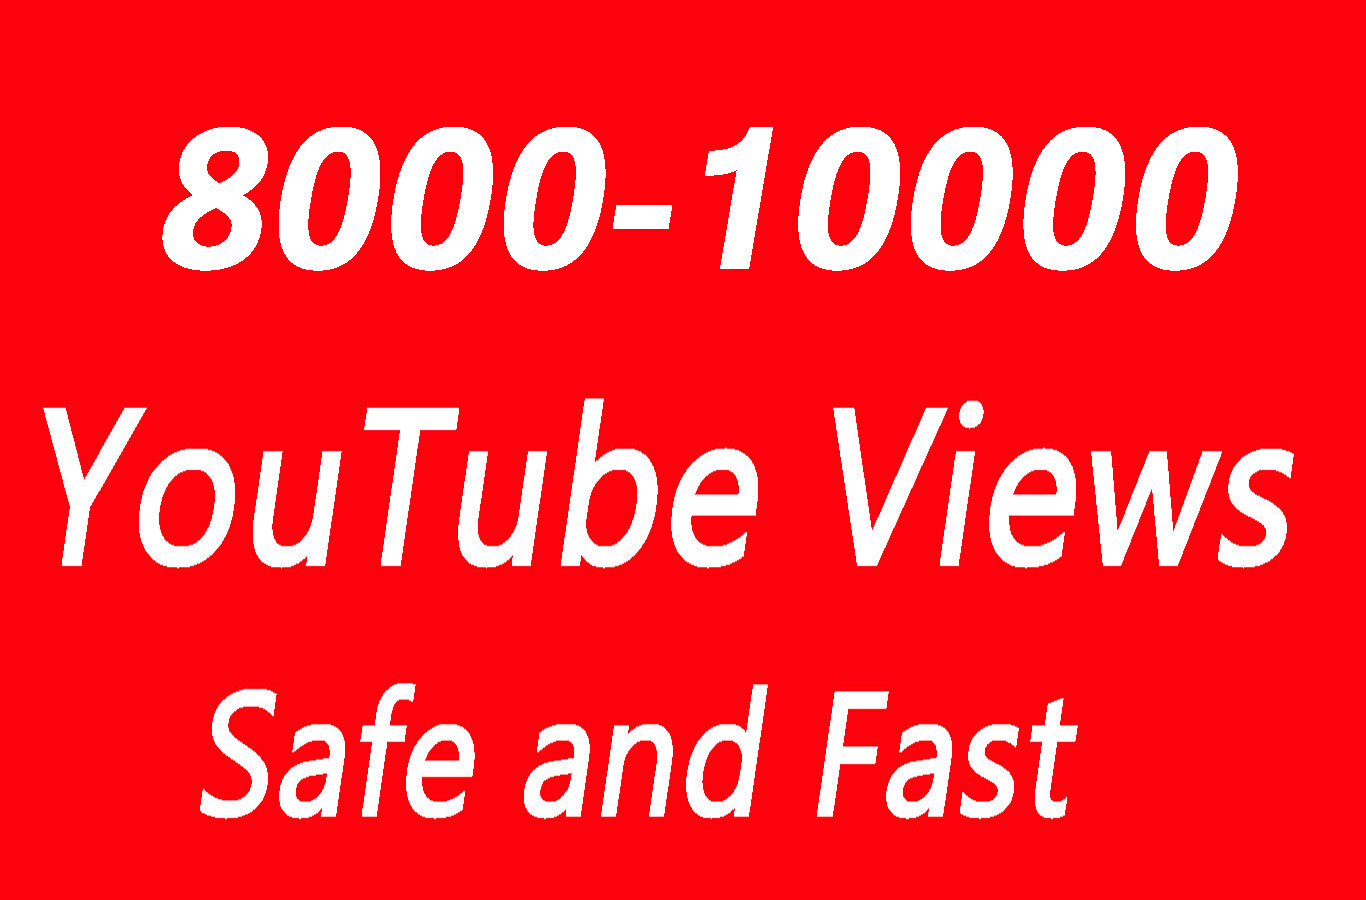 8000 - 10000 High Quality YouTube Views with choice Extra service 1000, 2000, 5000,10000, 20000, 20k 25000, 25k and 50,000, 50k, 100,000 100k, 250k, 500k YouTube video Views